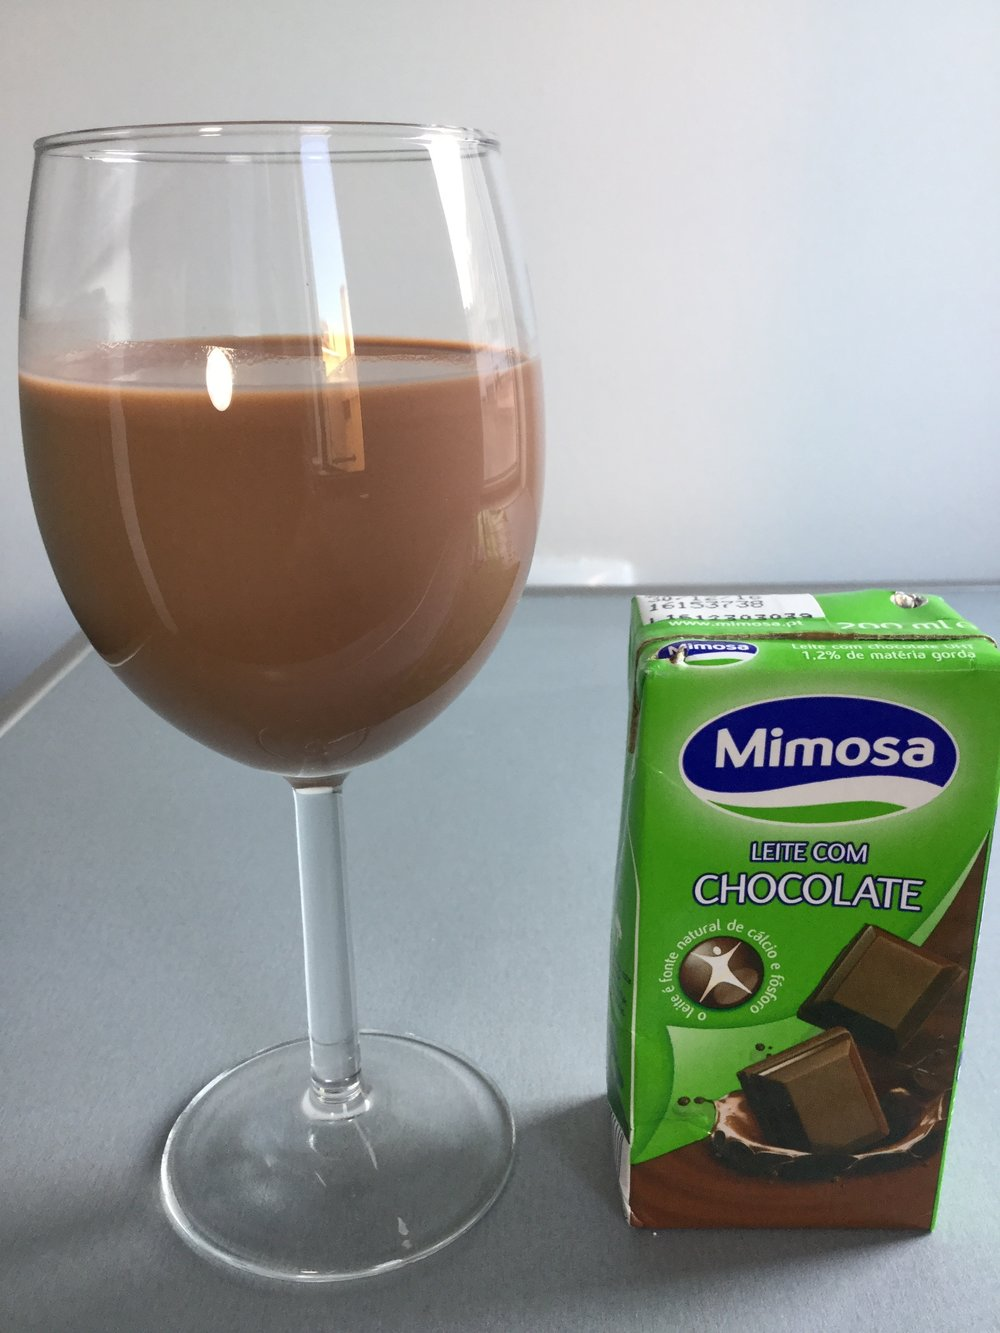 Mimosa Leite Com Chocolate Cup